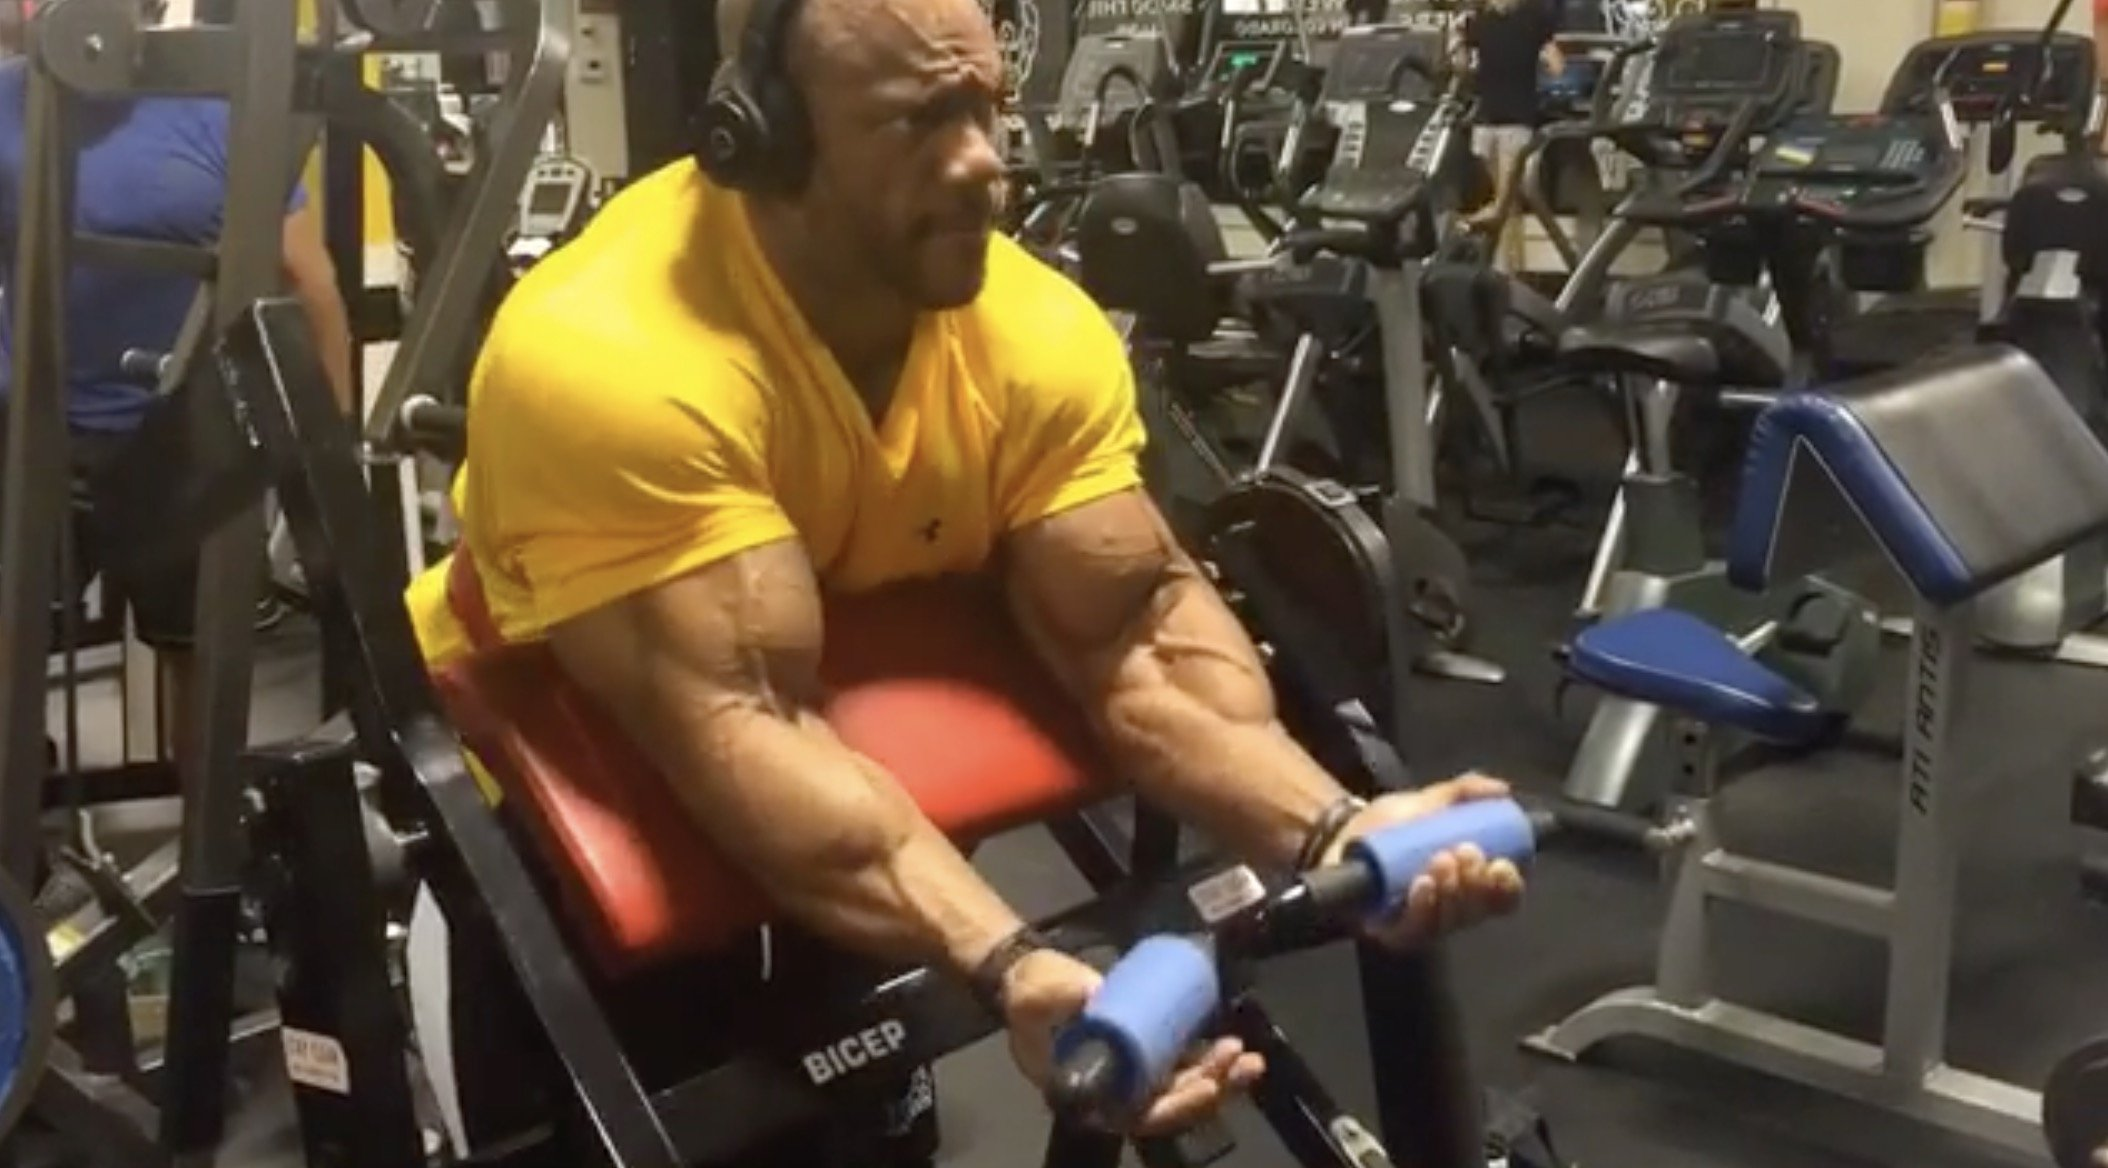 5X Mr Olympia Phil Heath Training Biceps Two Weeks out from 2016 Olympia -  Evolution of Bodybuilding